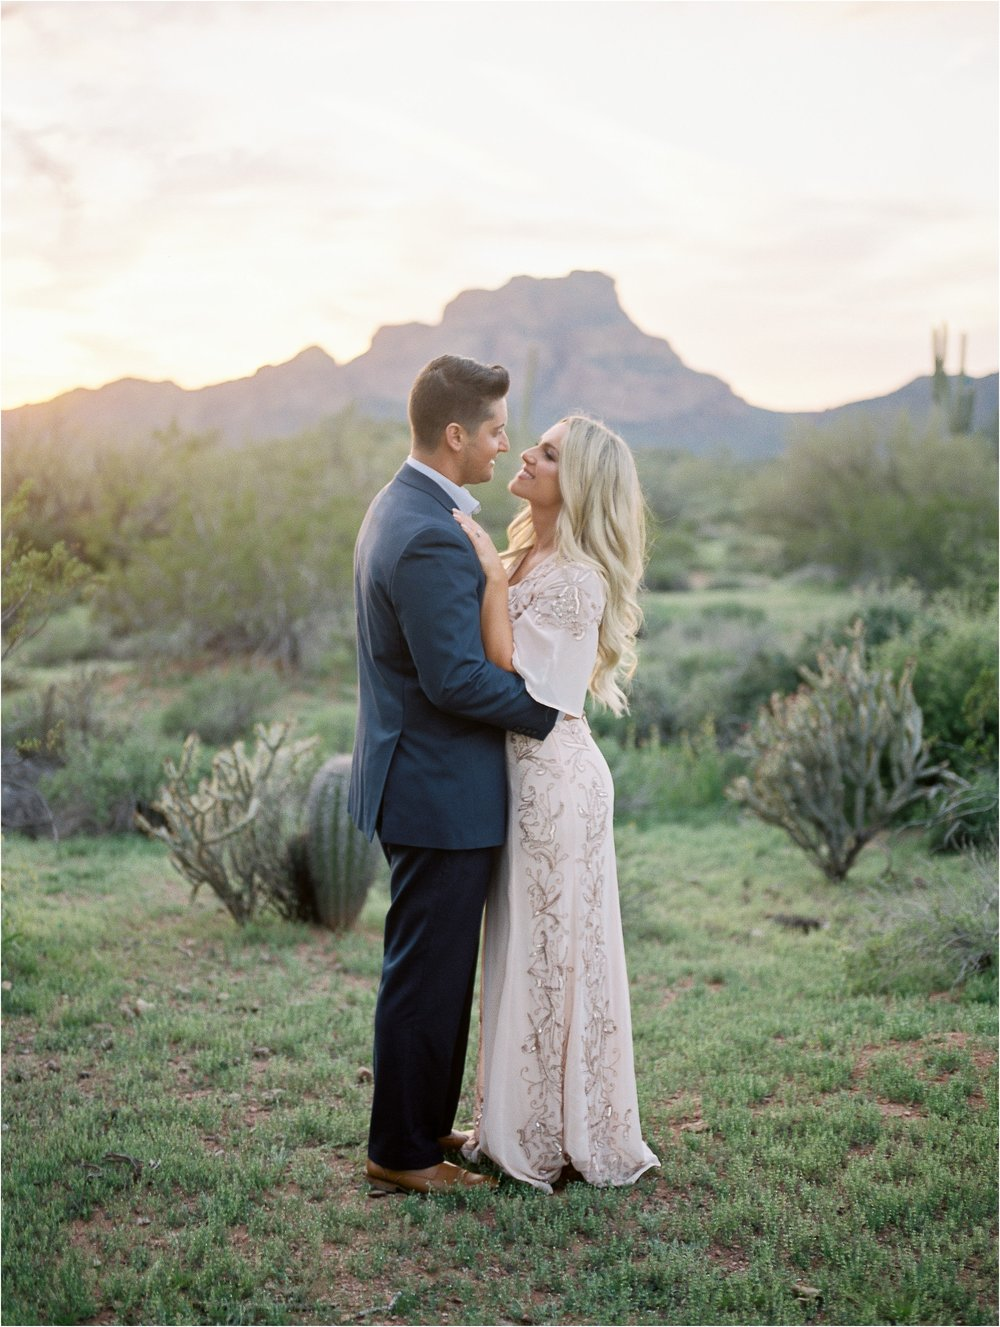 Sarah Jane Photography Film Hybrid Scottsdale Phoenix Arizona Destination Wedding Photographer salt river asos engagement britney tj_0032.jpg